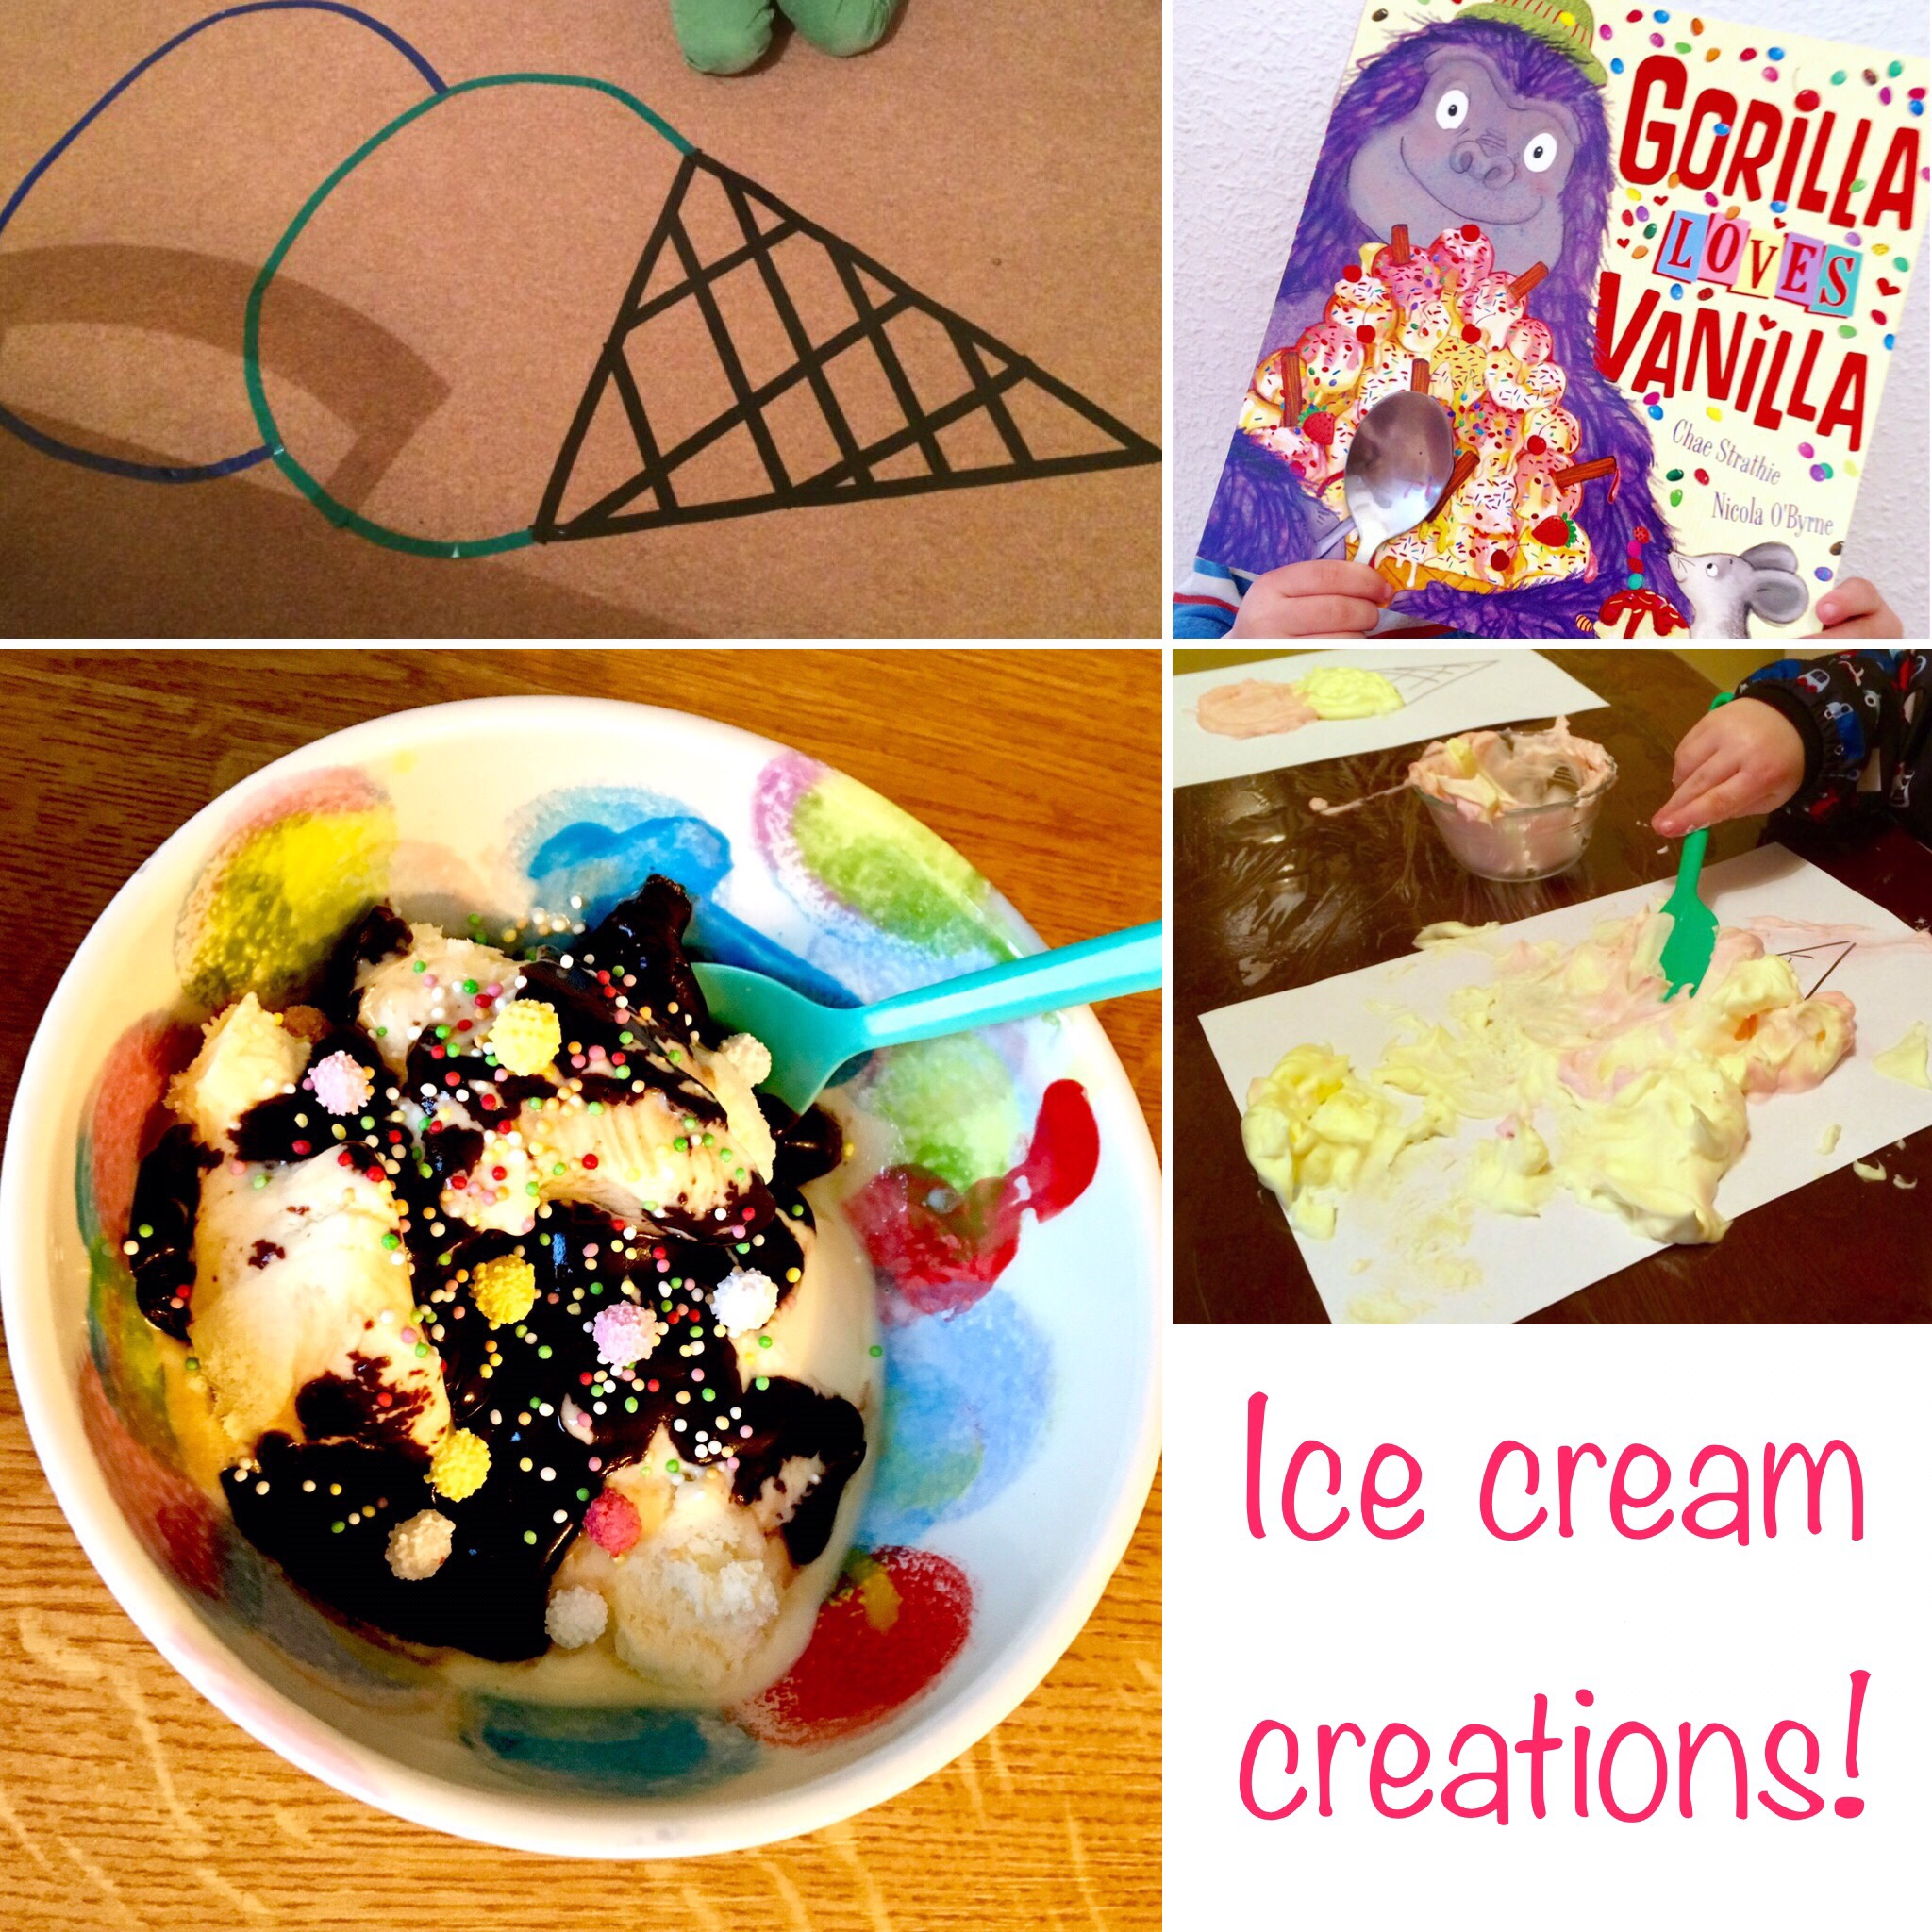 Gorilla loves vanilla ice cream creations homegrown reader forumfinder Image collections